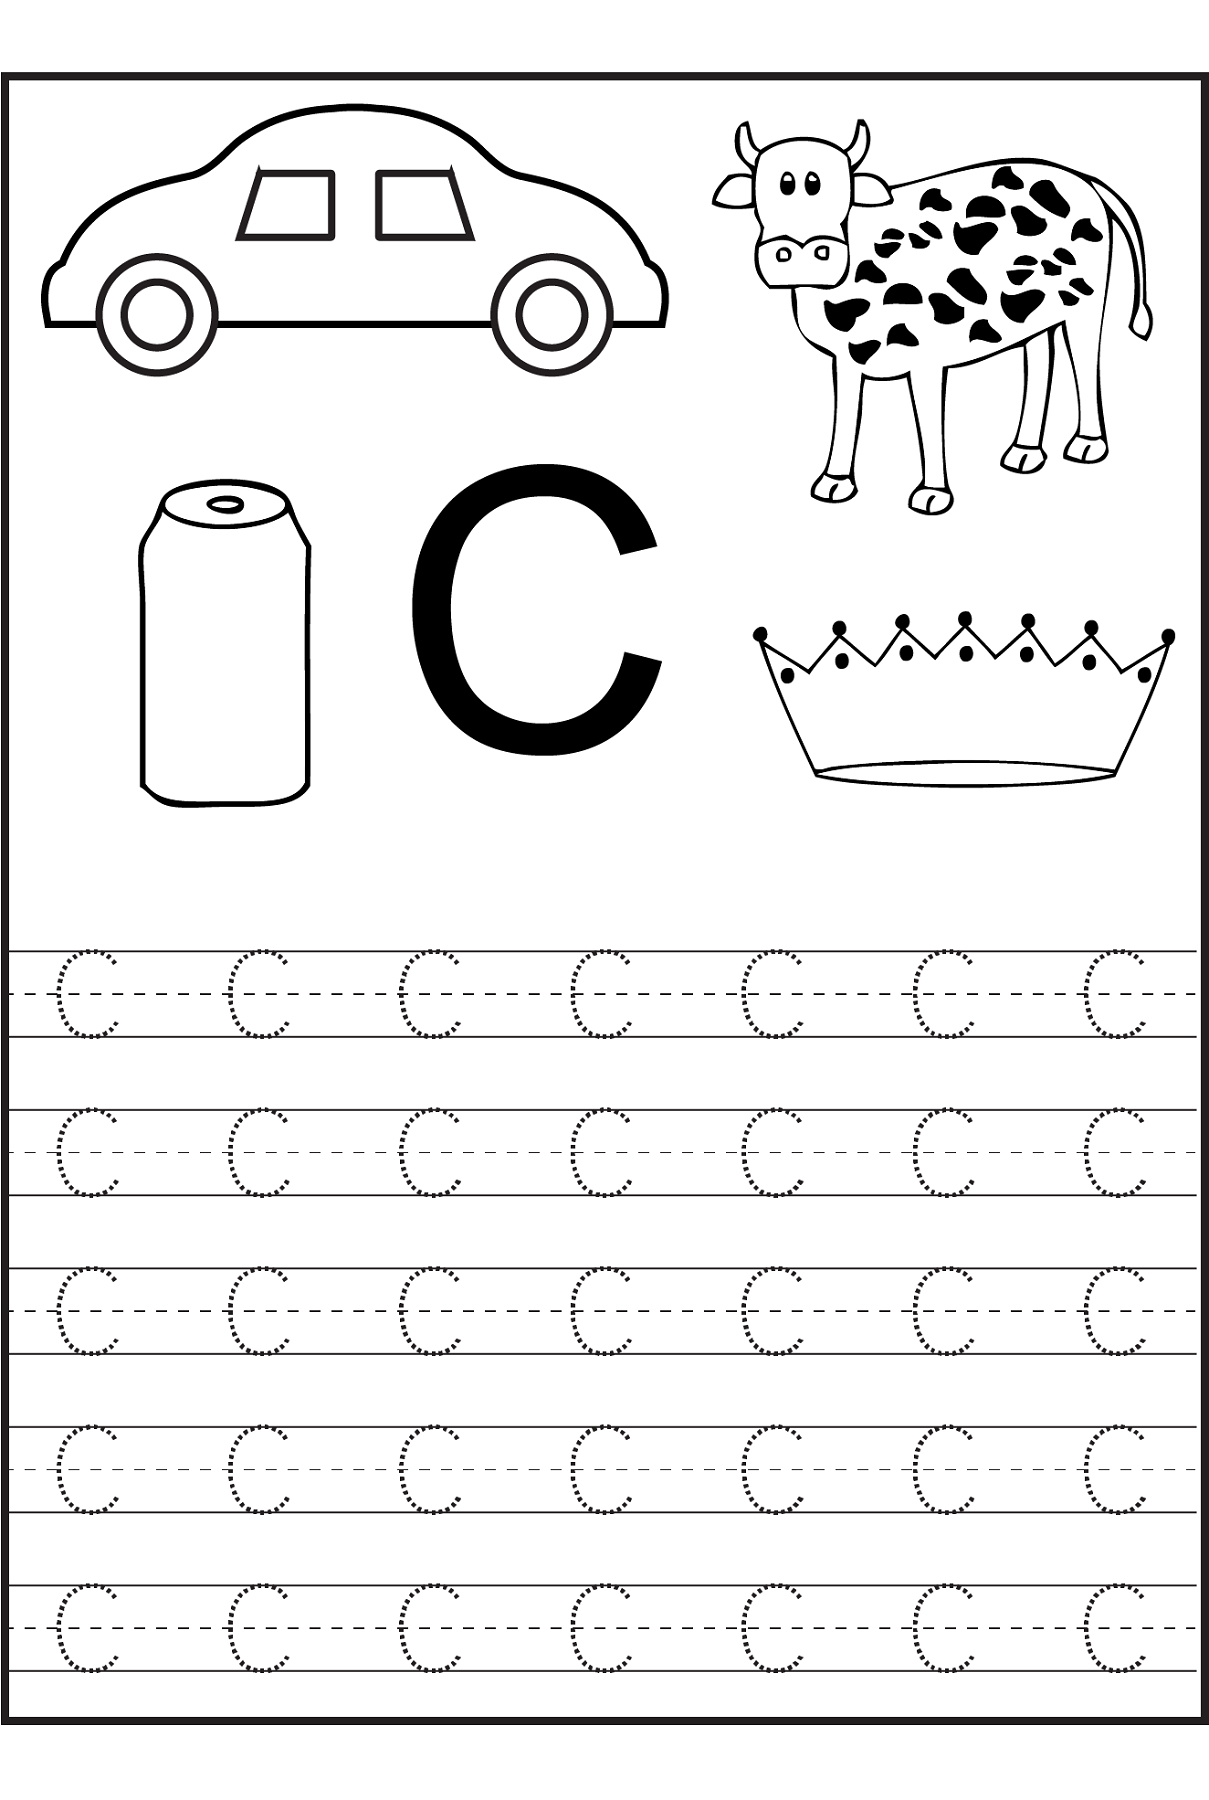 Letter C Worksheets For First Grade